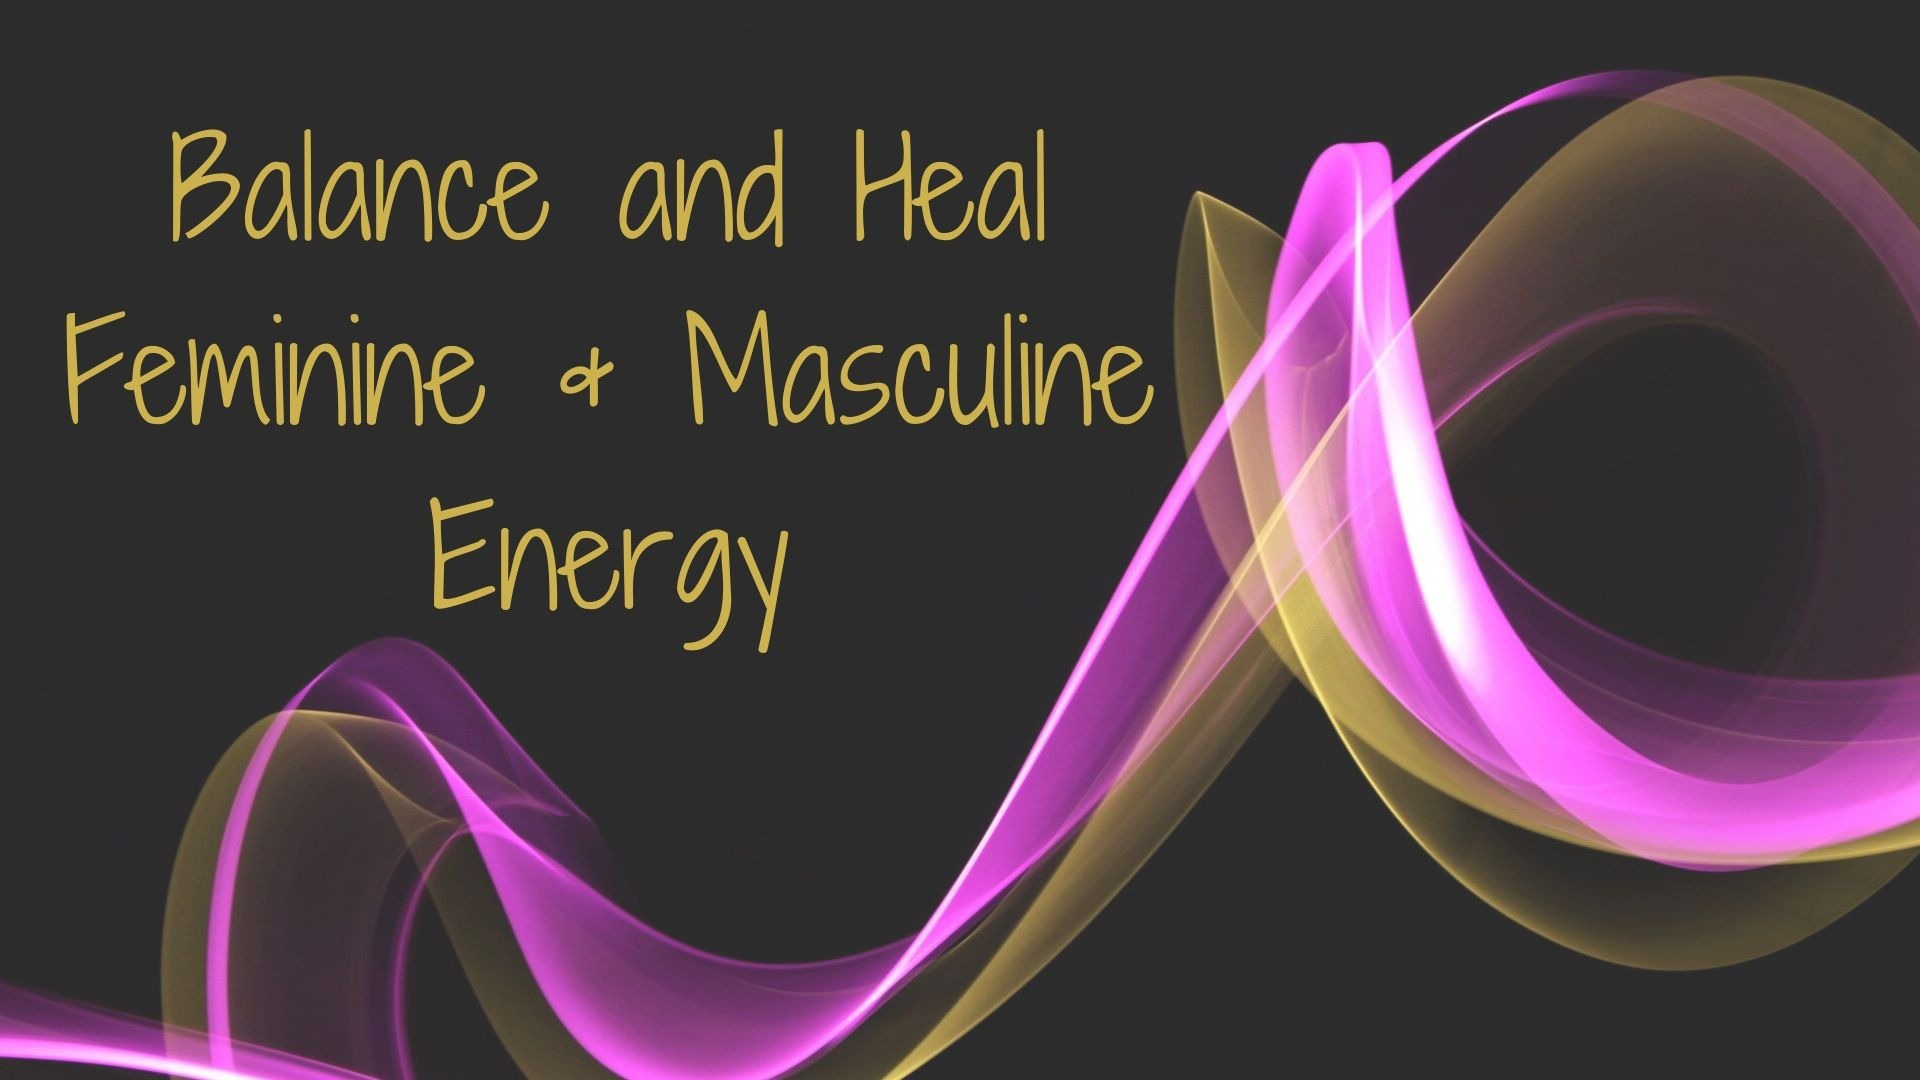 Is energy what masculine The Power